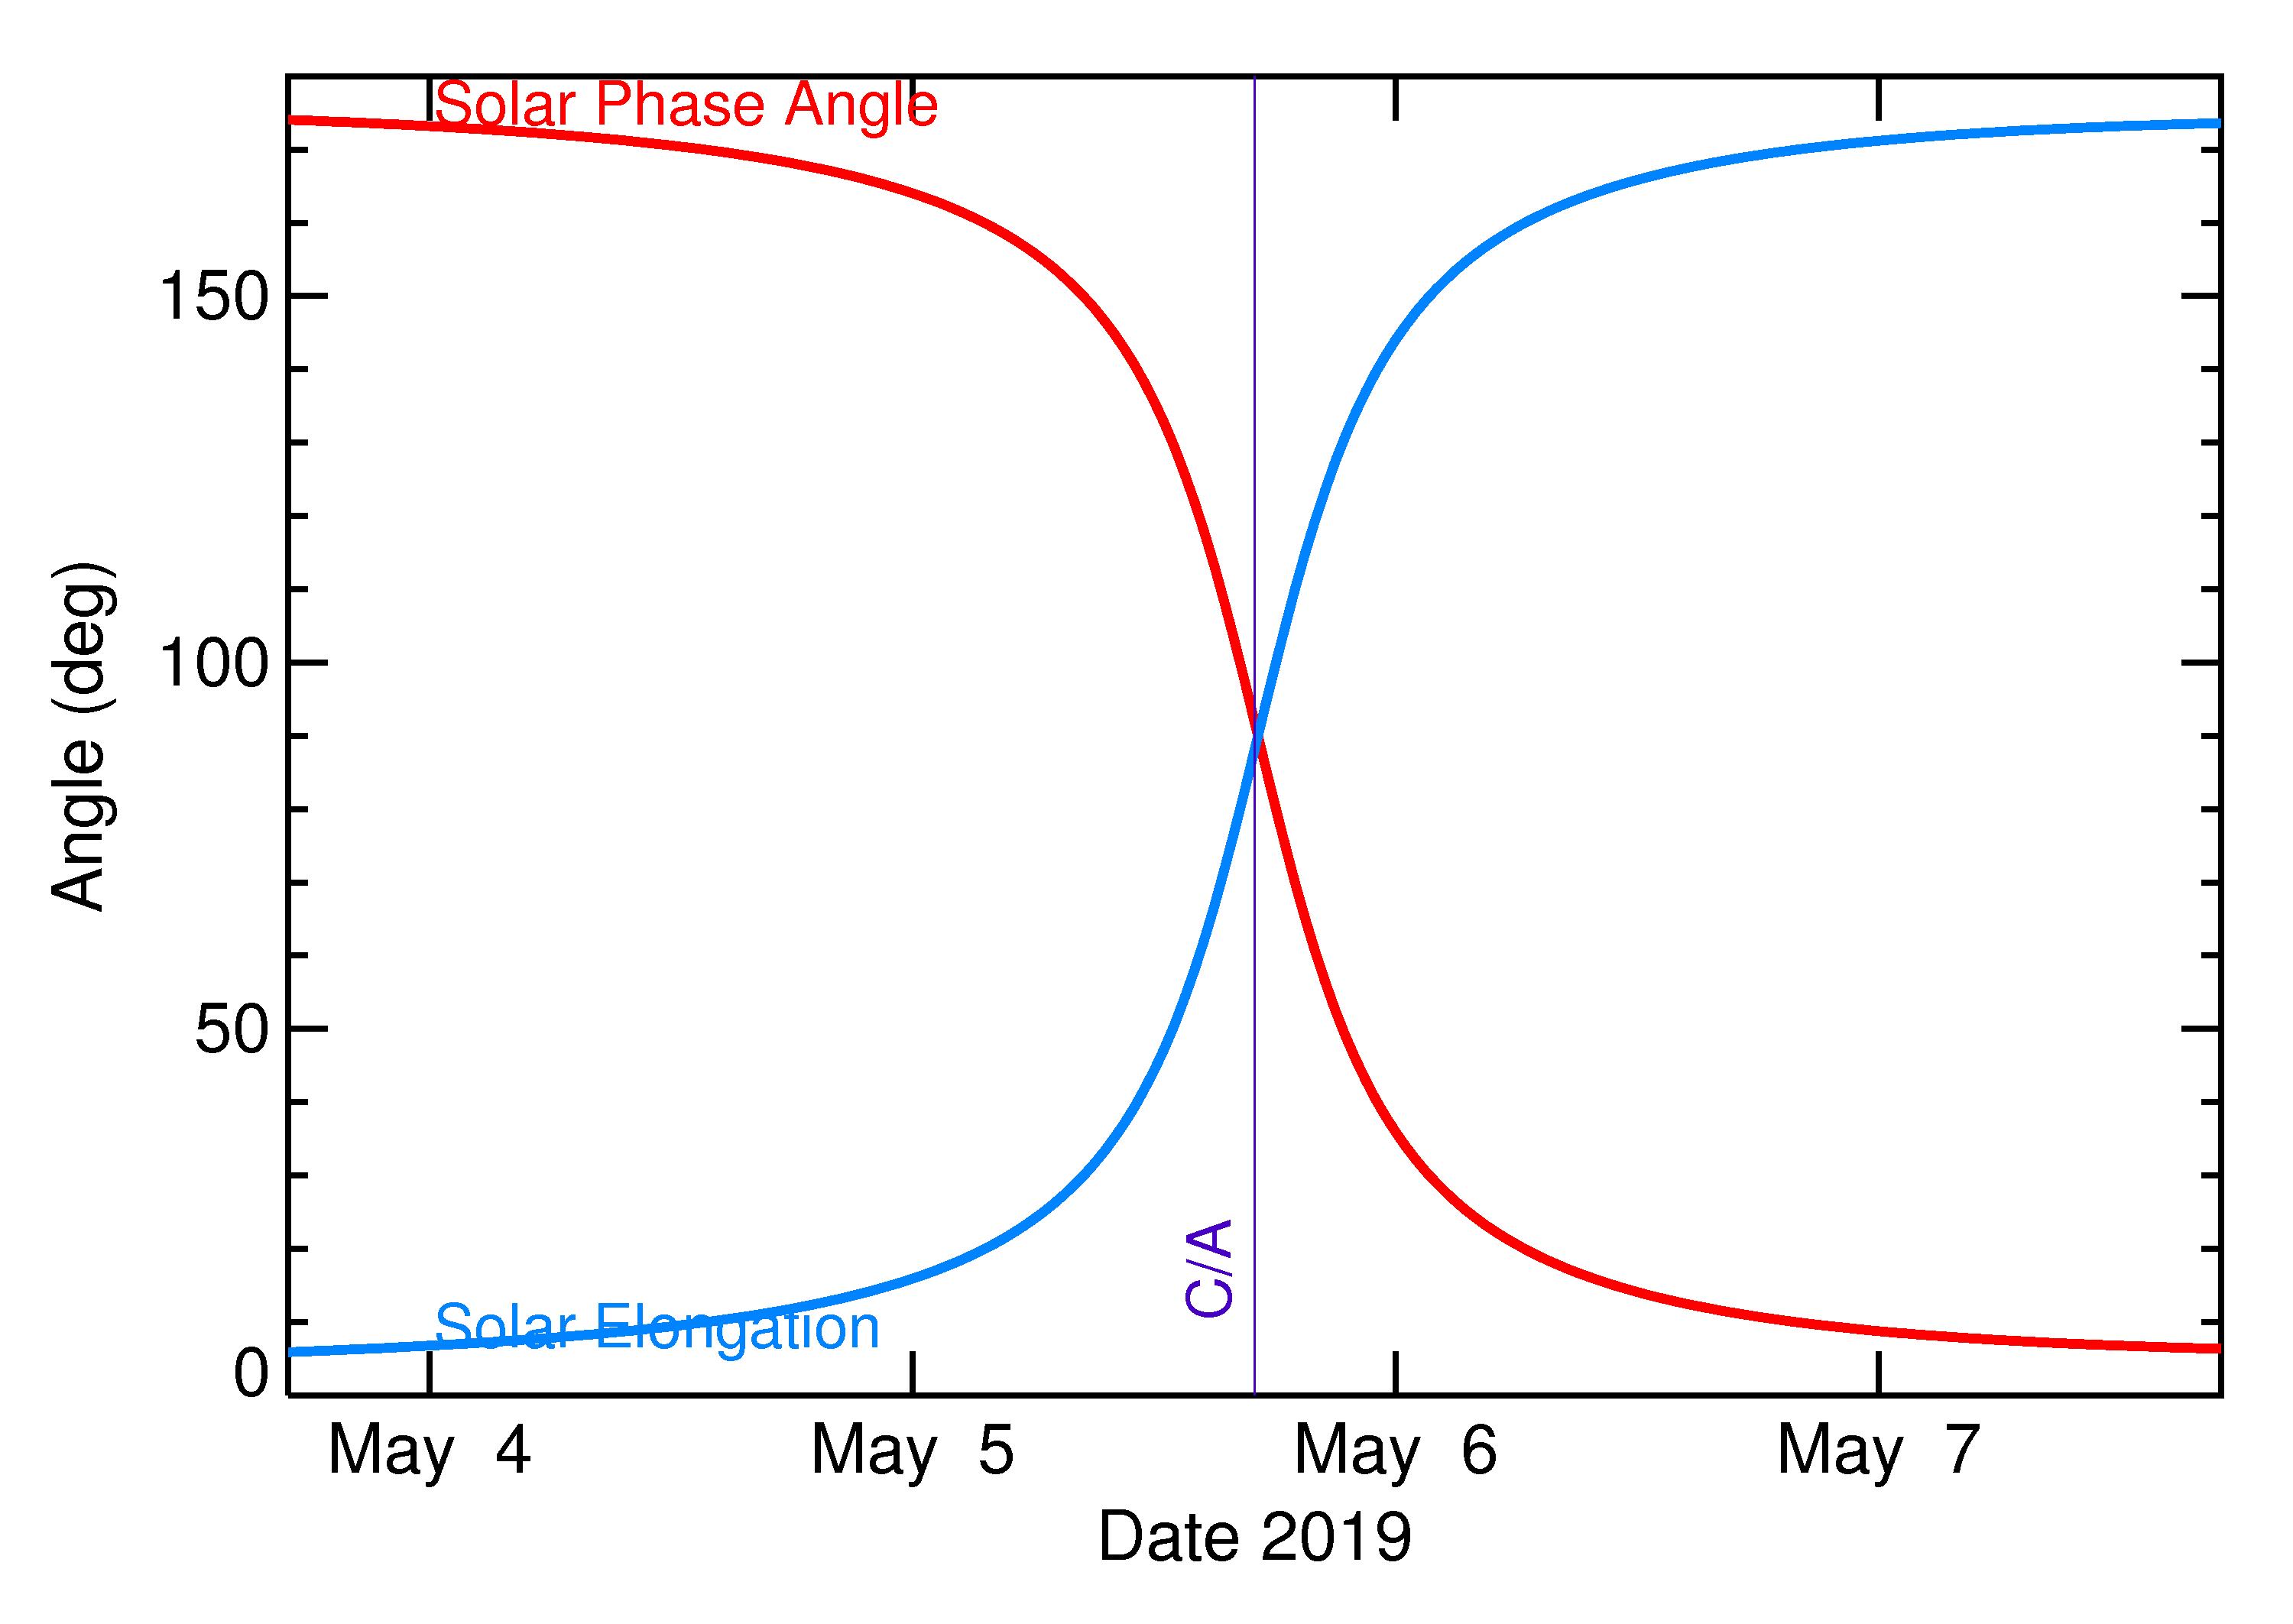 Solar Elongation and Solar Phase Angle of 2019 JY2 in the days around closest approach